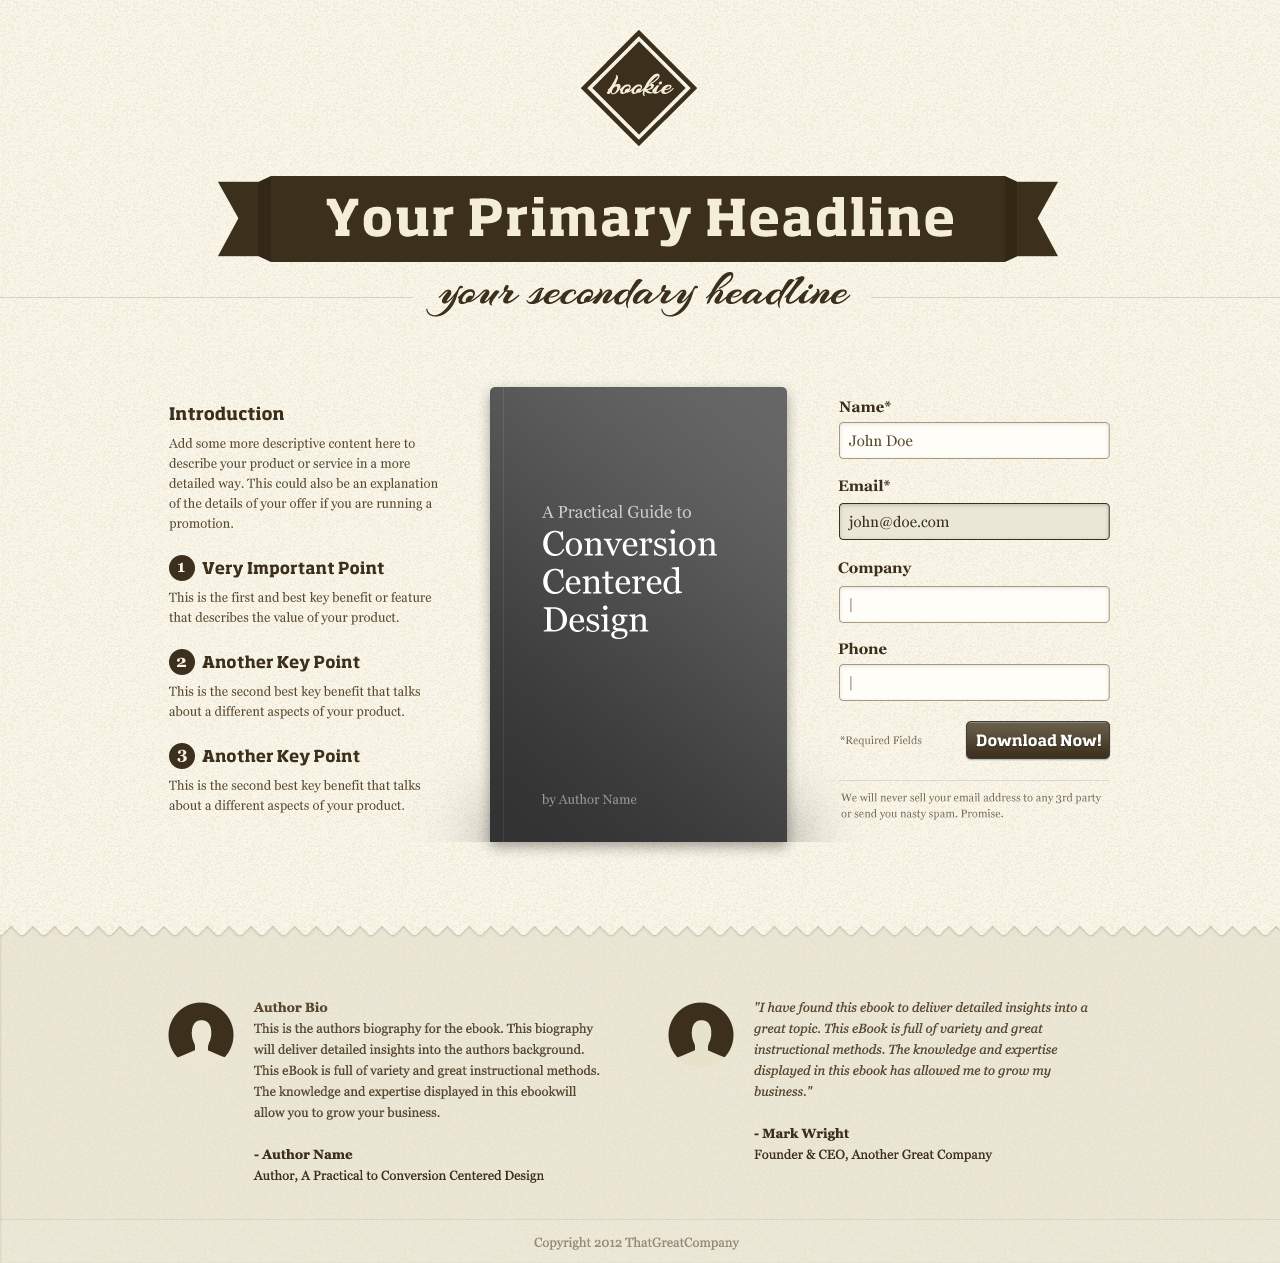 36 creative landing page design examples a showcase and critique